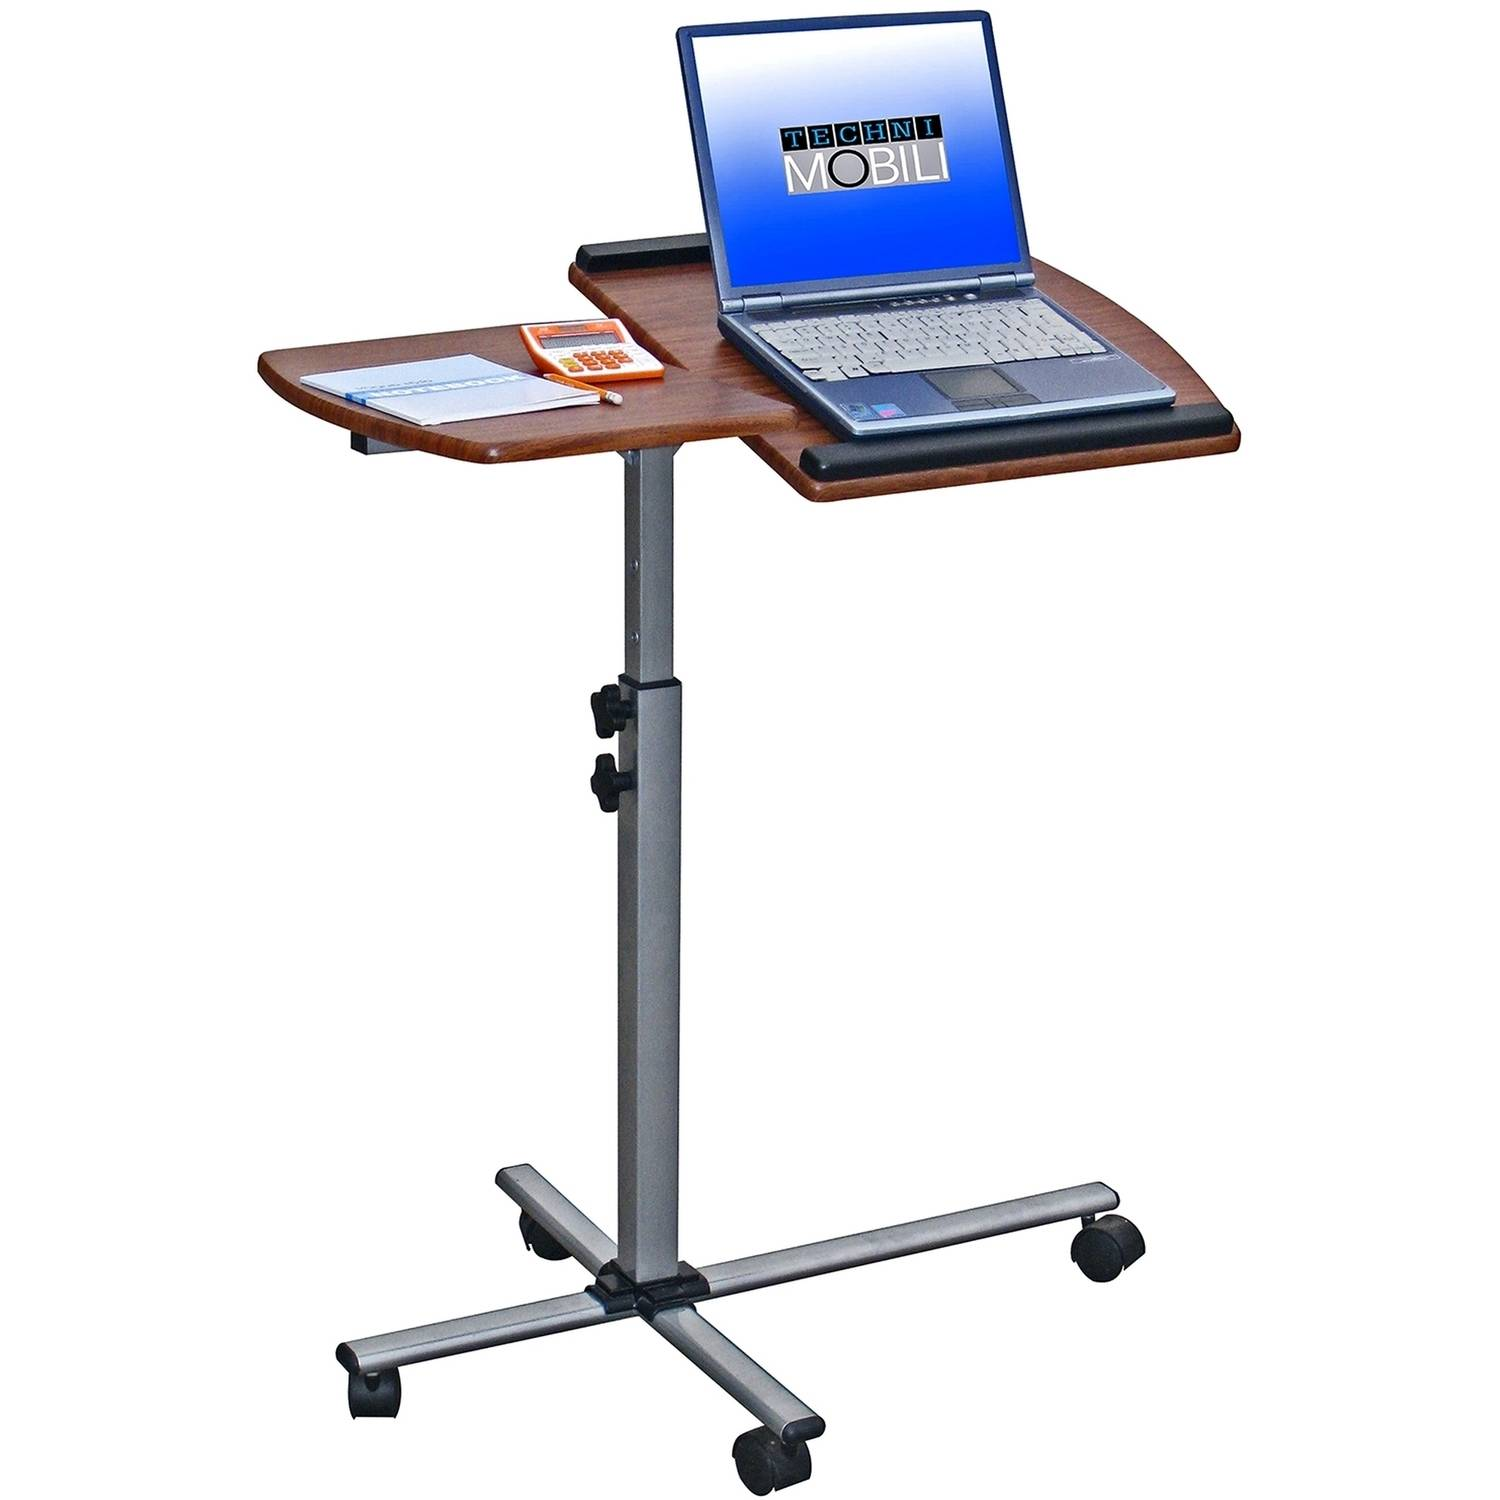 Techni Mobili Deluxe Rolling Adjustable Height, Tilting Laptop Cart, Mahogany (RTA-B003-M615)